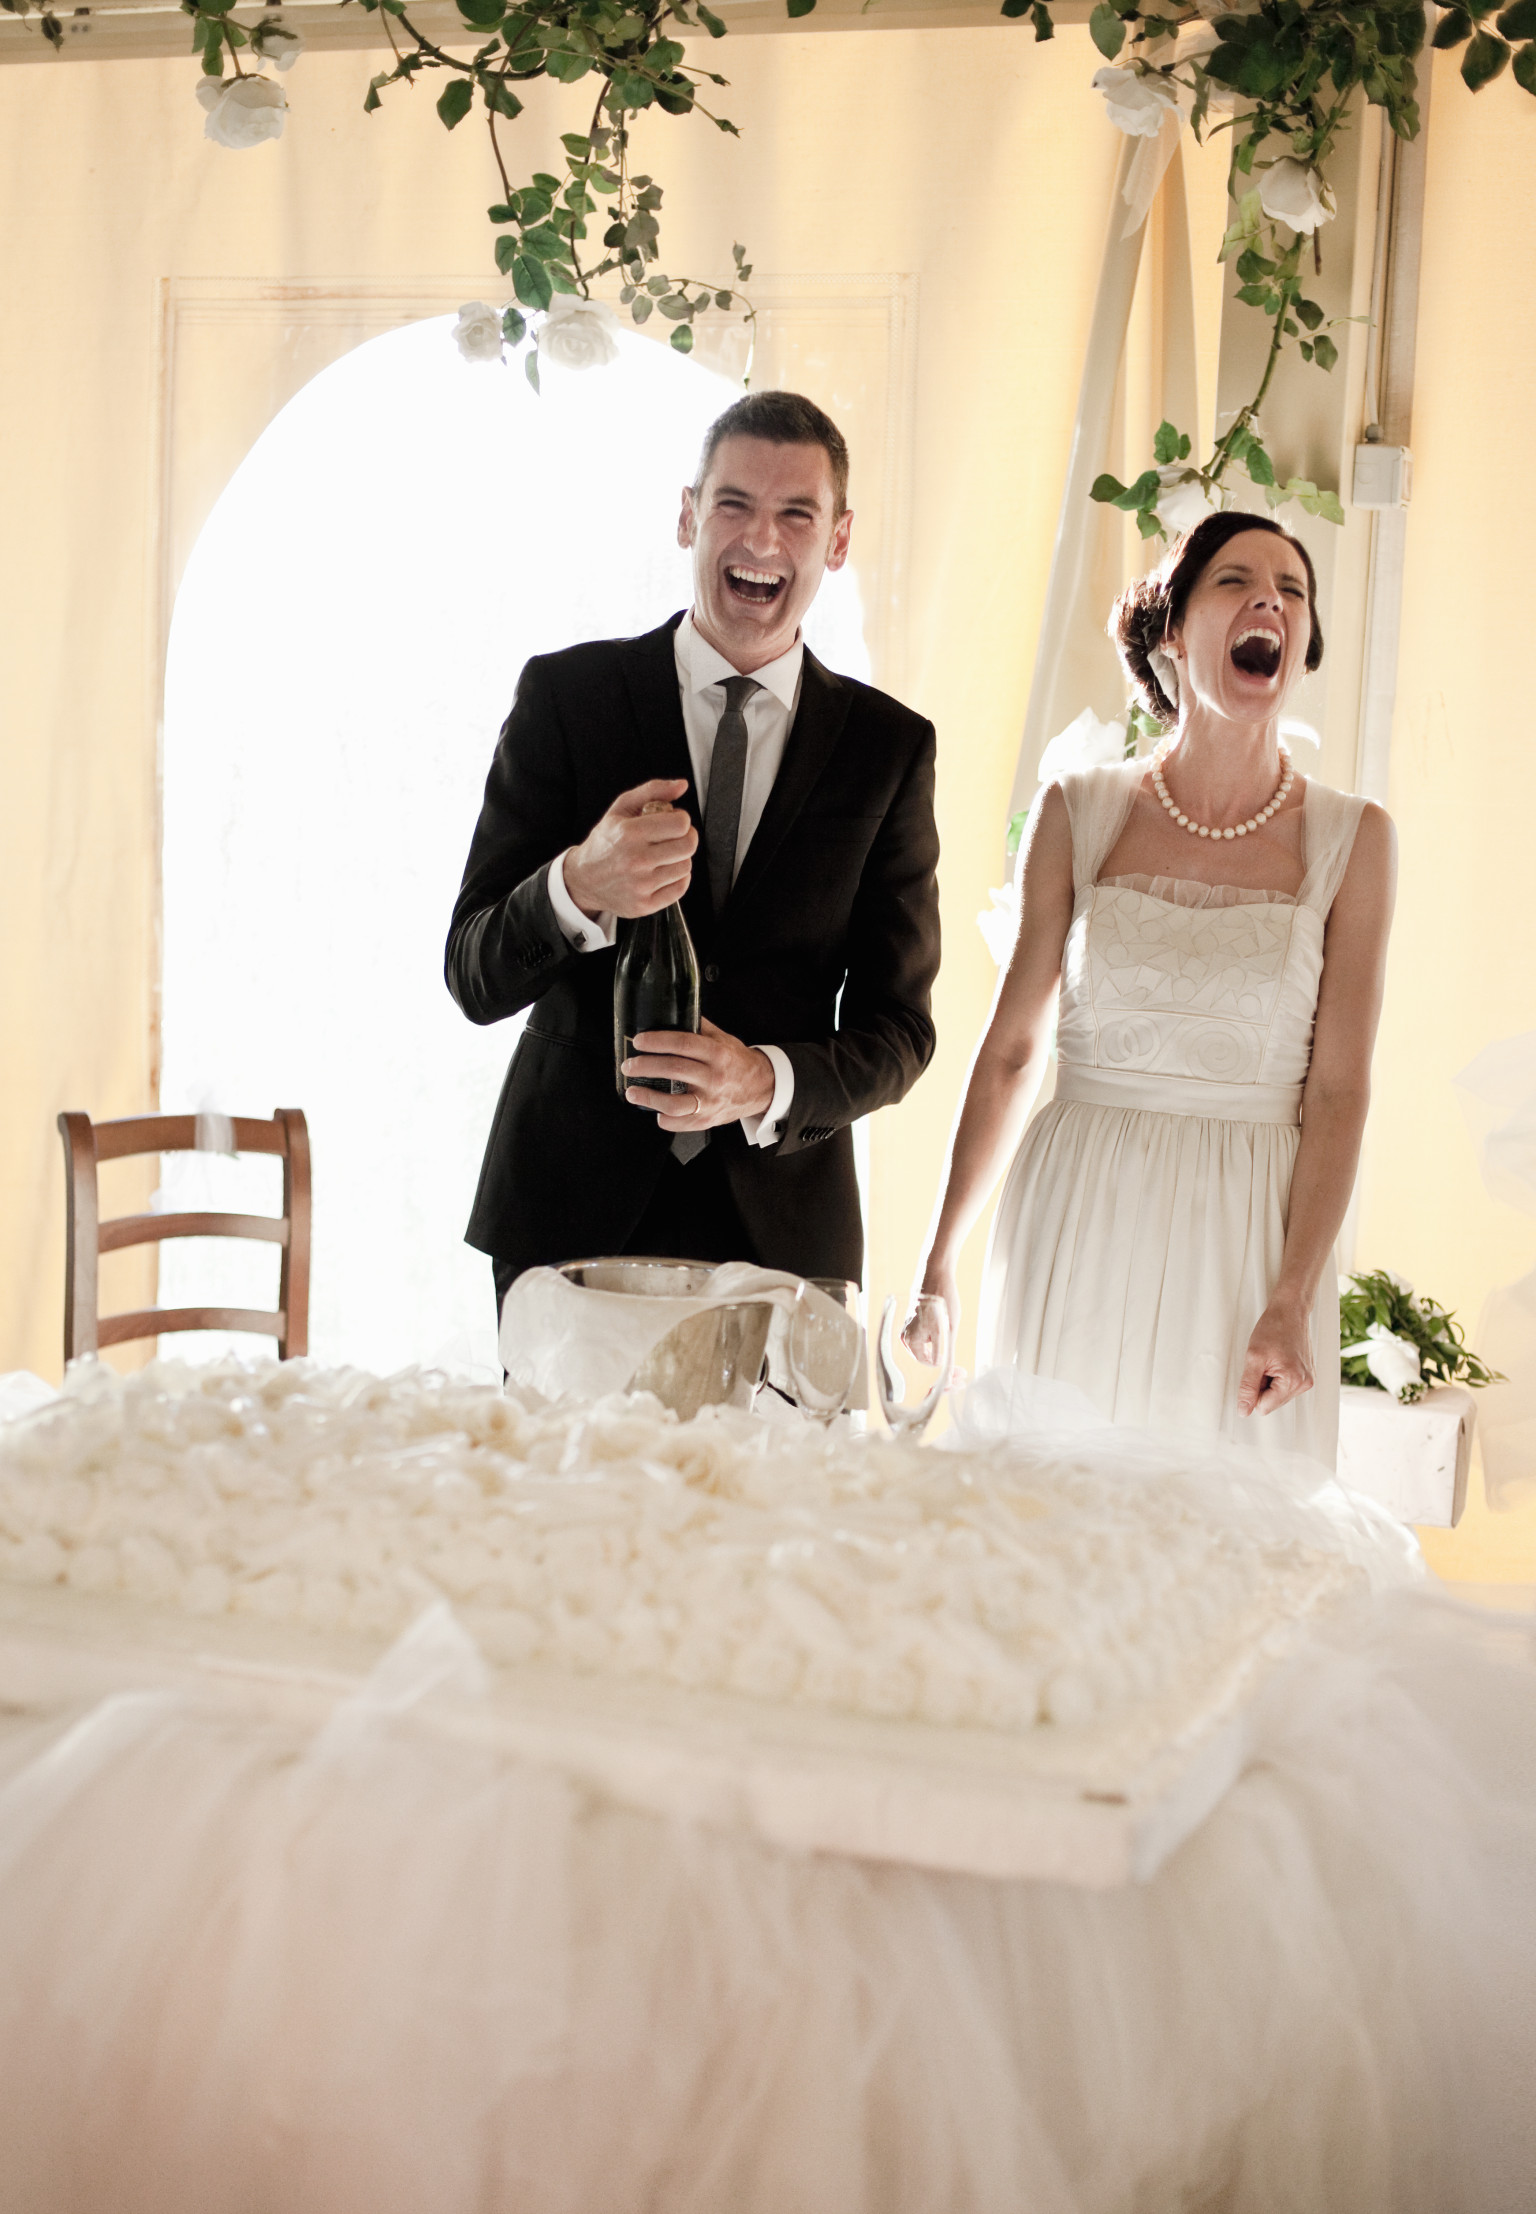 Wedding Bar Guide: How Much Booze Do You Need? | HuffPost